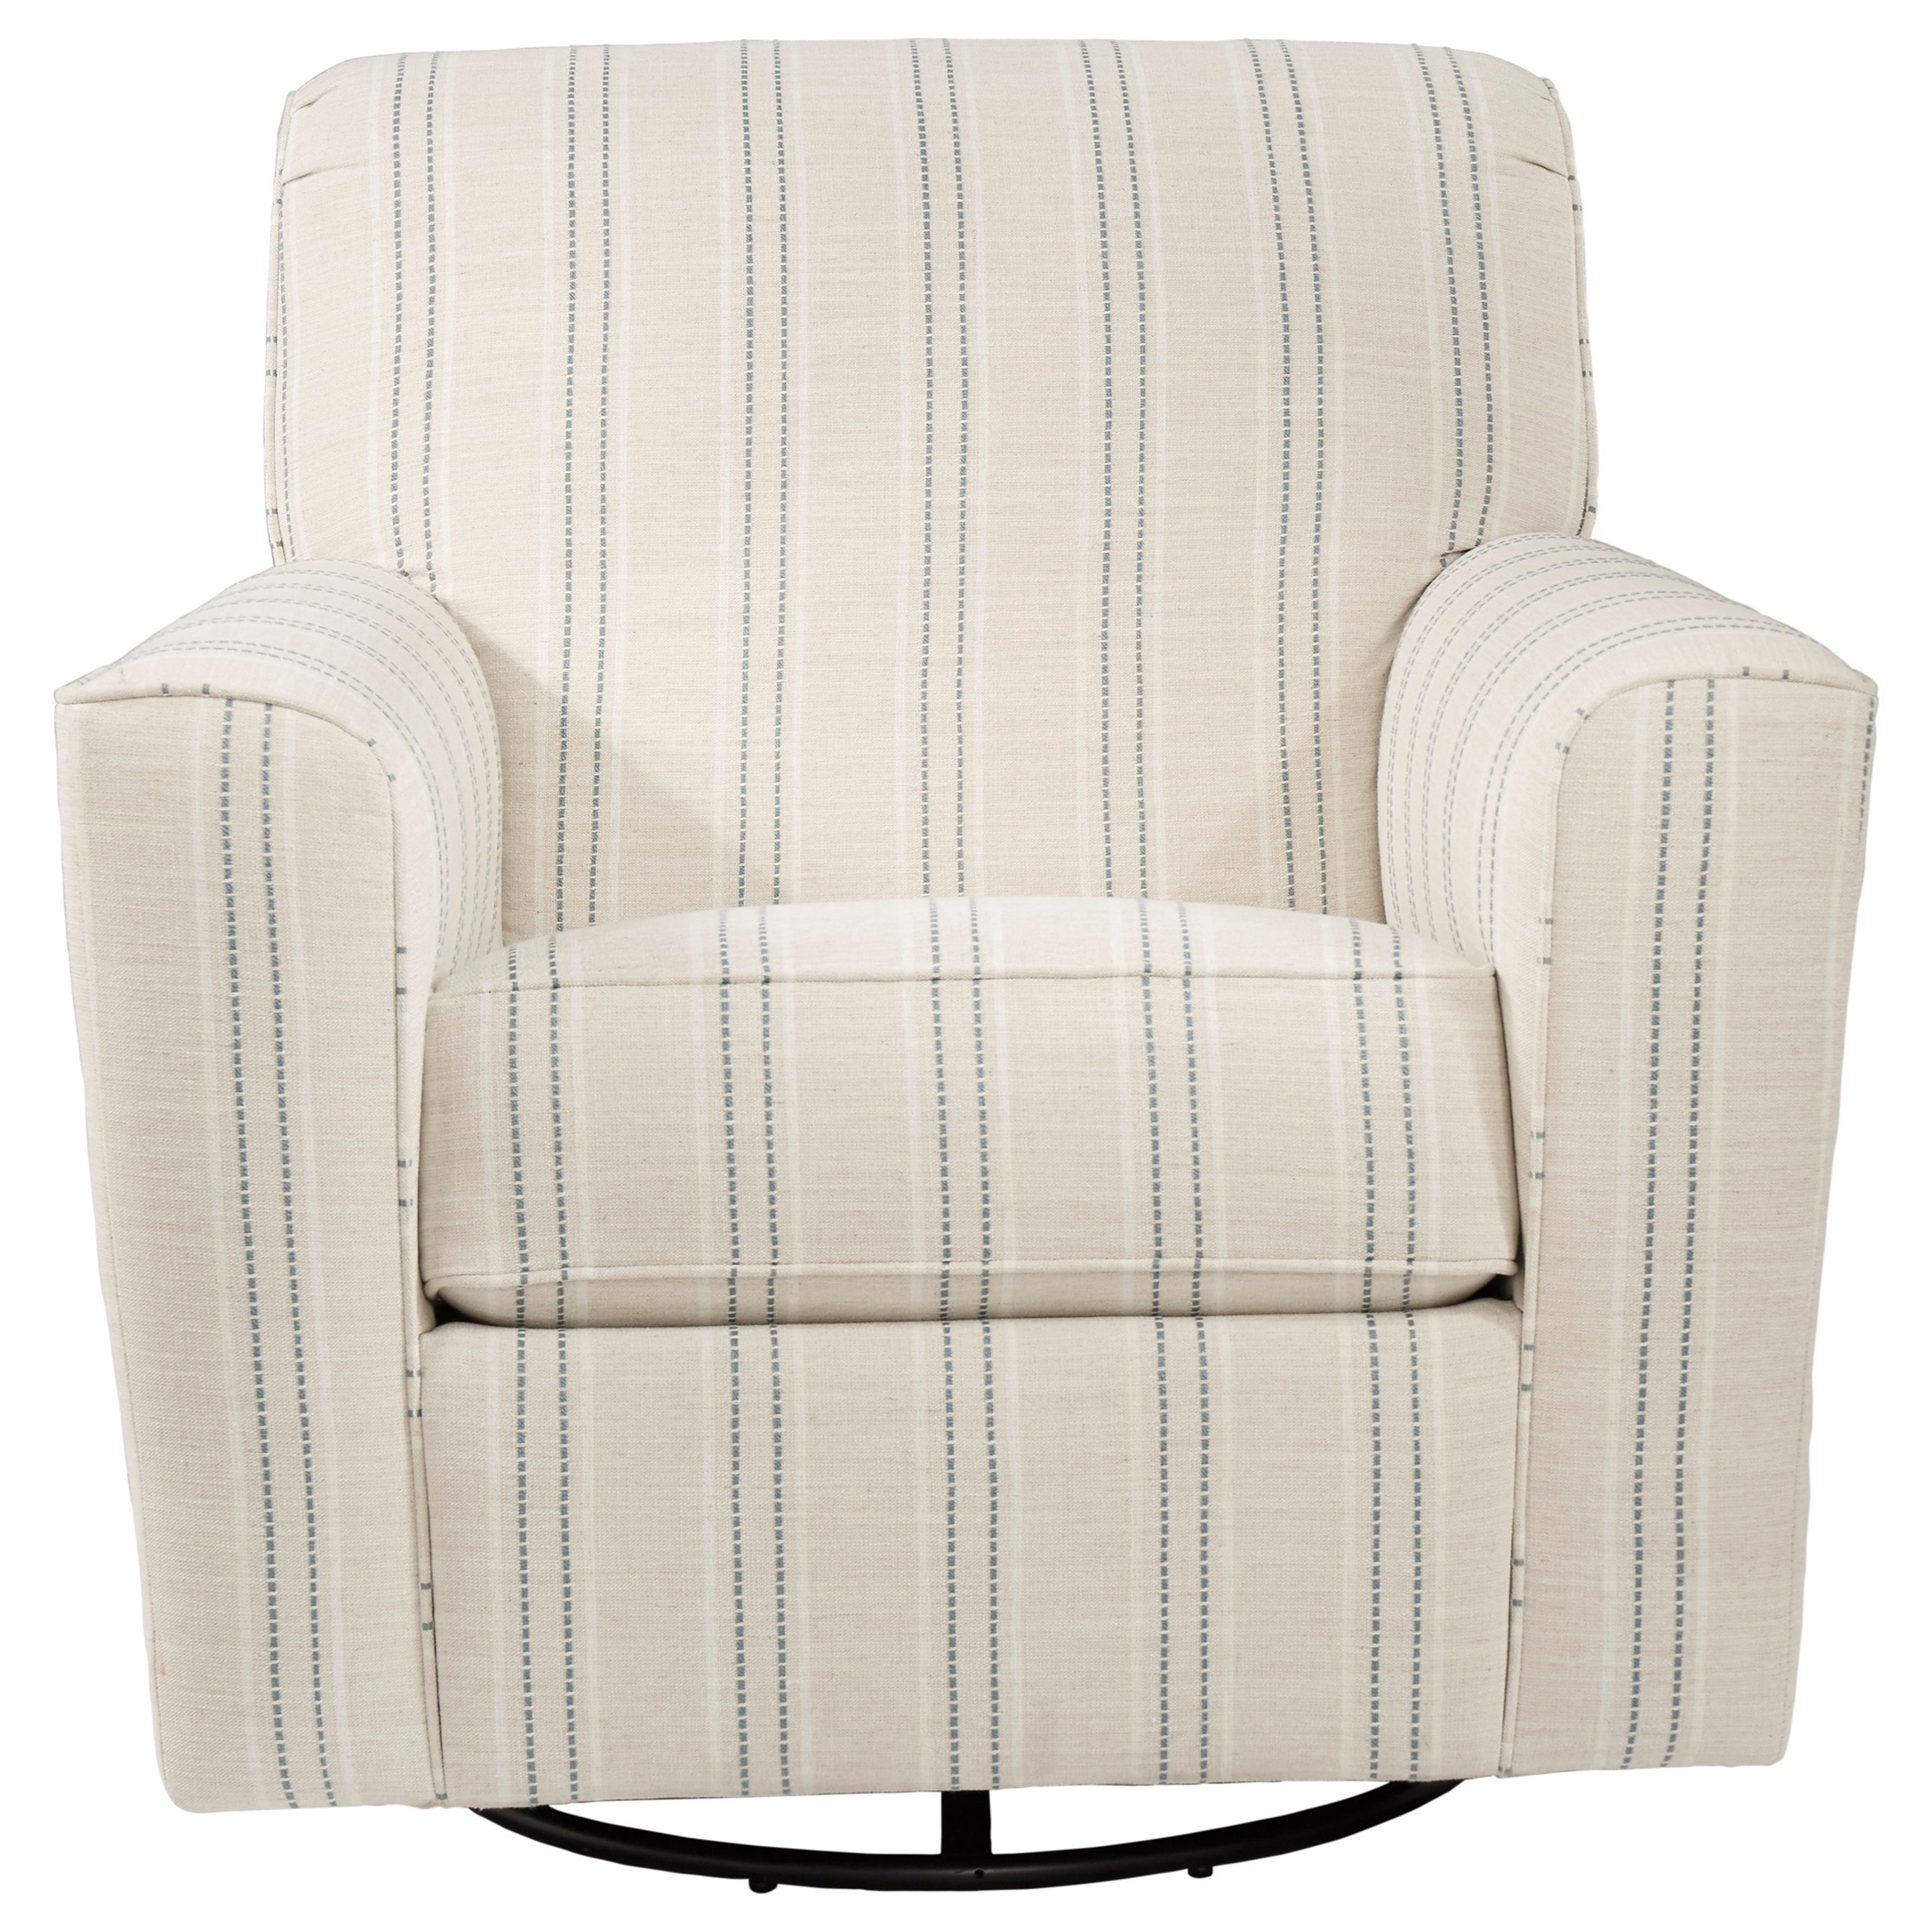 Picture of: Signature Design By Ashley Alandari Transitional Accent Chair With Swivel Glider Godby Home Furnishings Upholstered Chairs